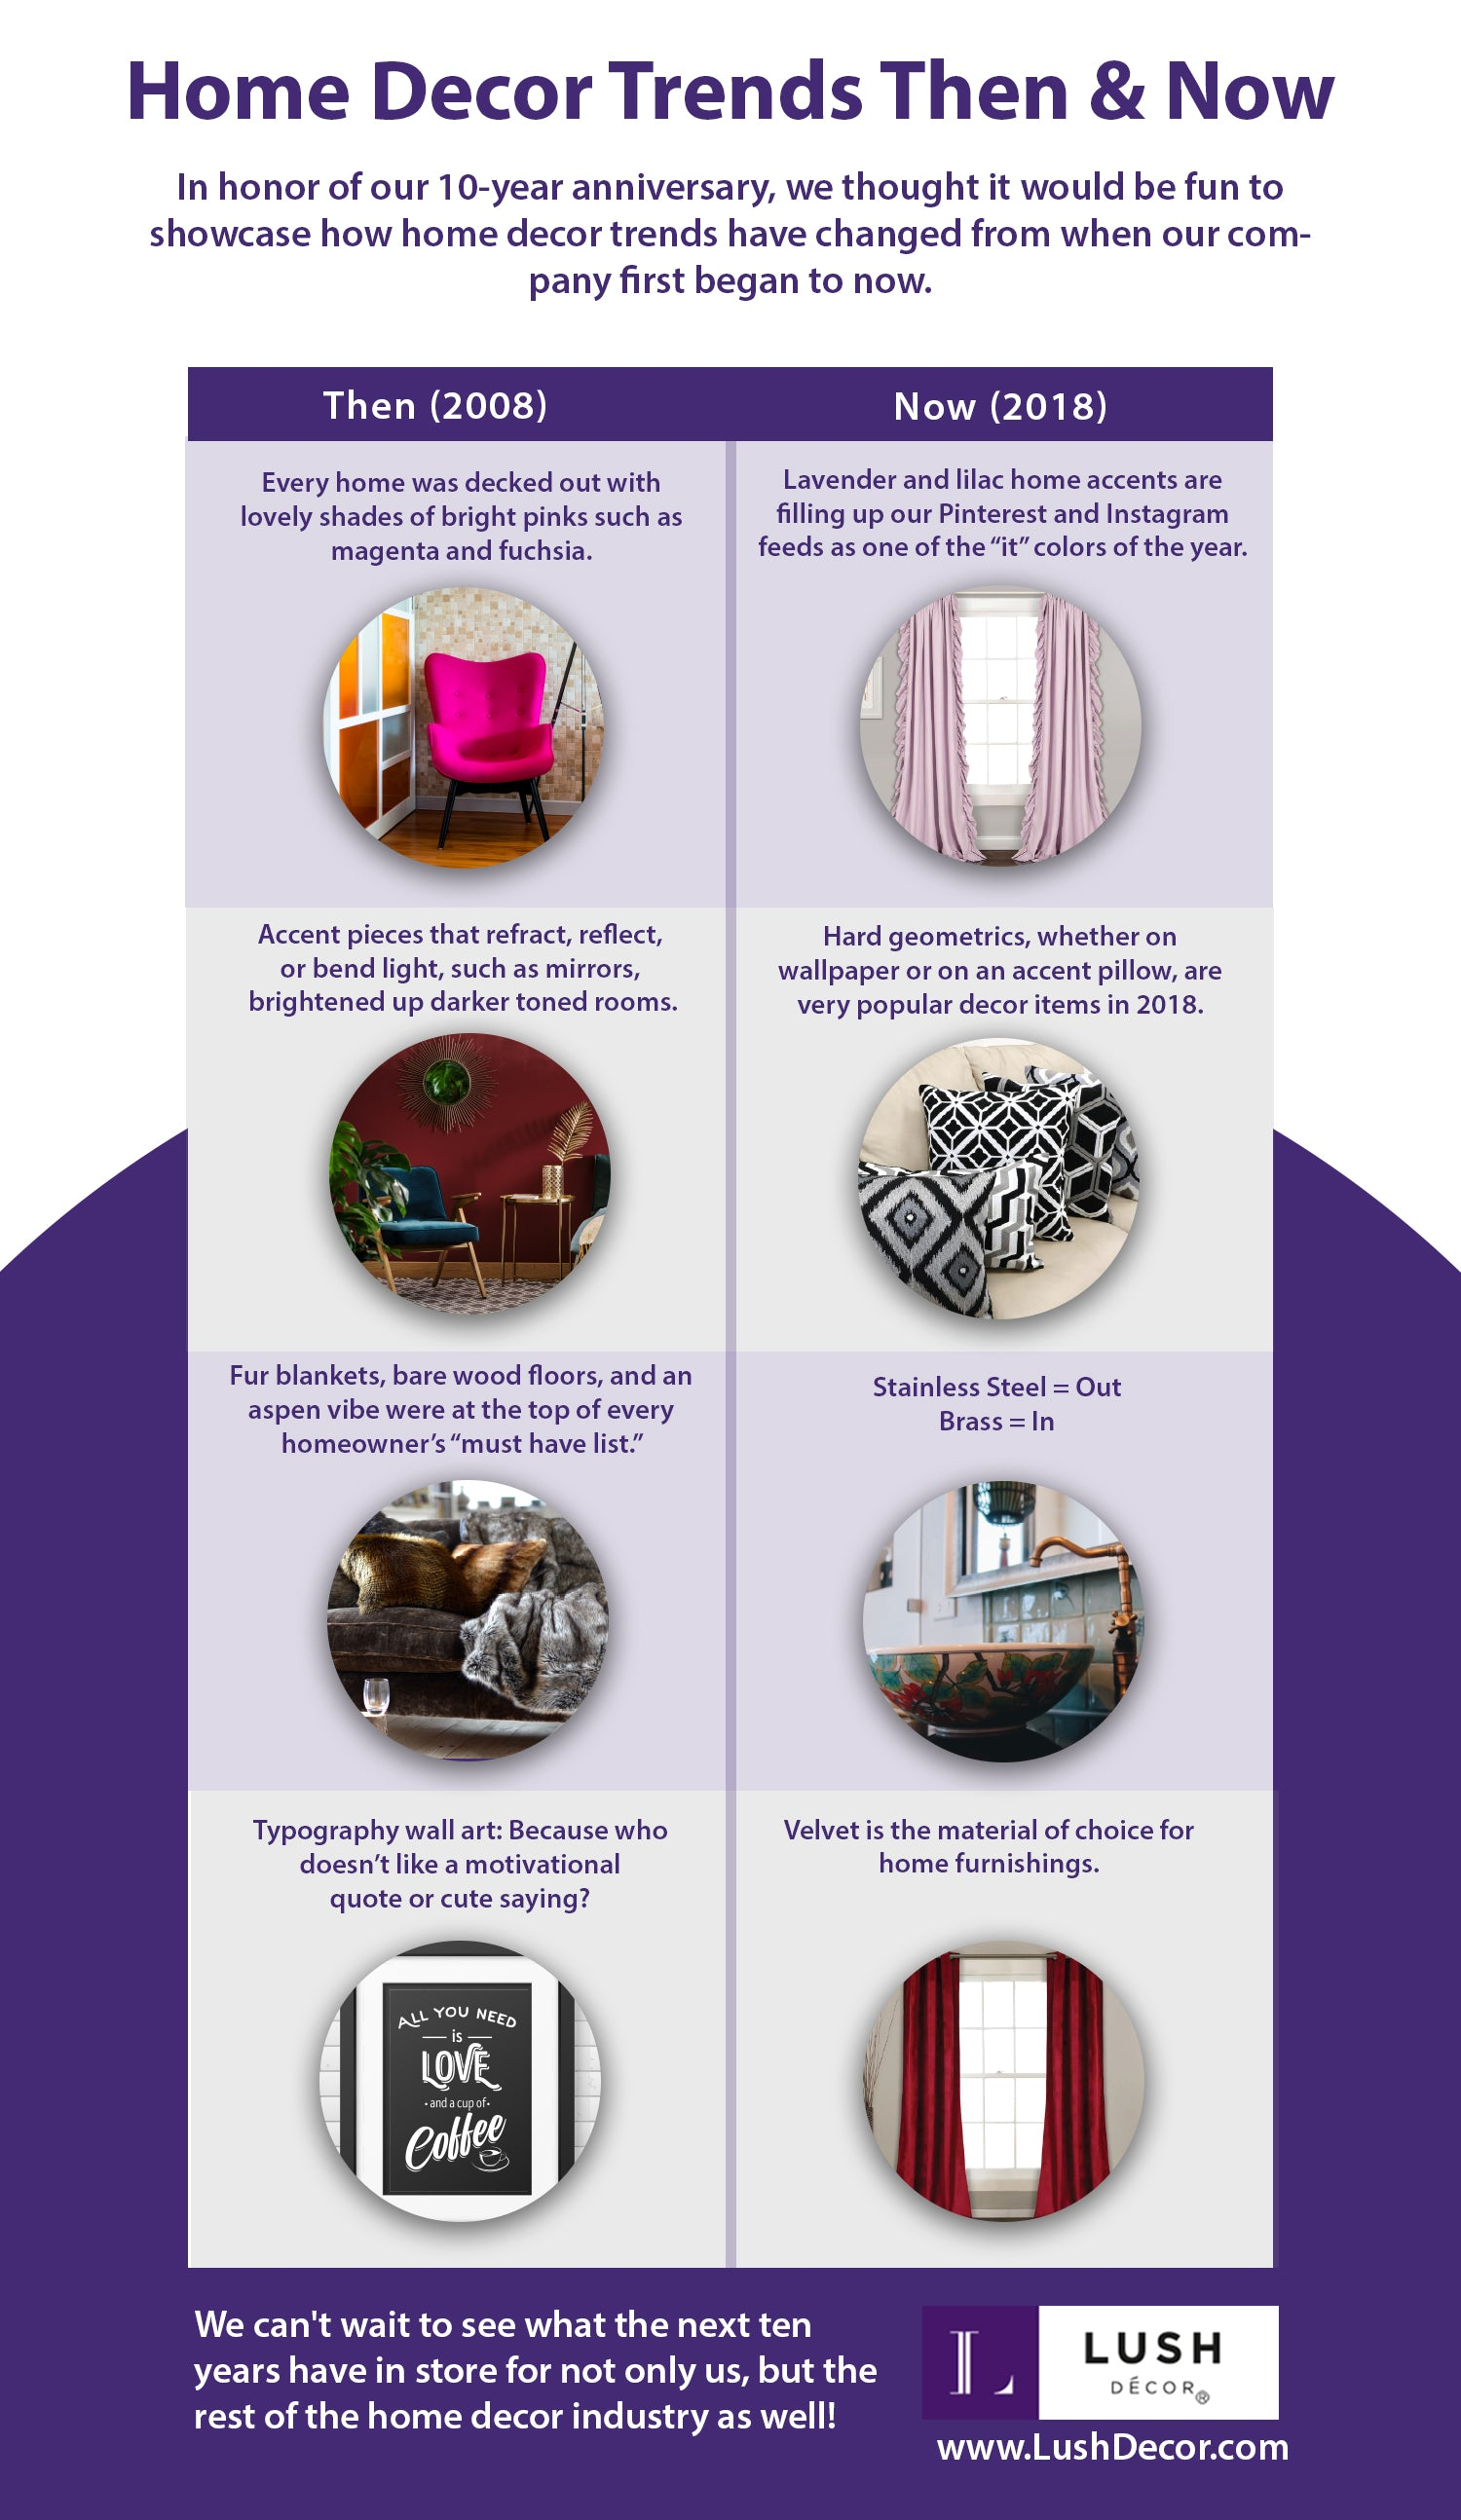 Home Decor Trends Then & Now Infographic